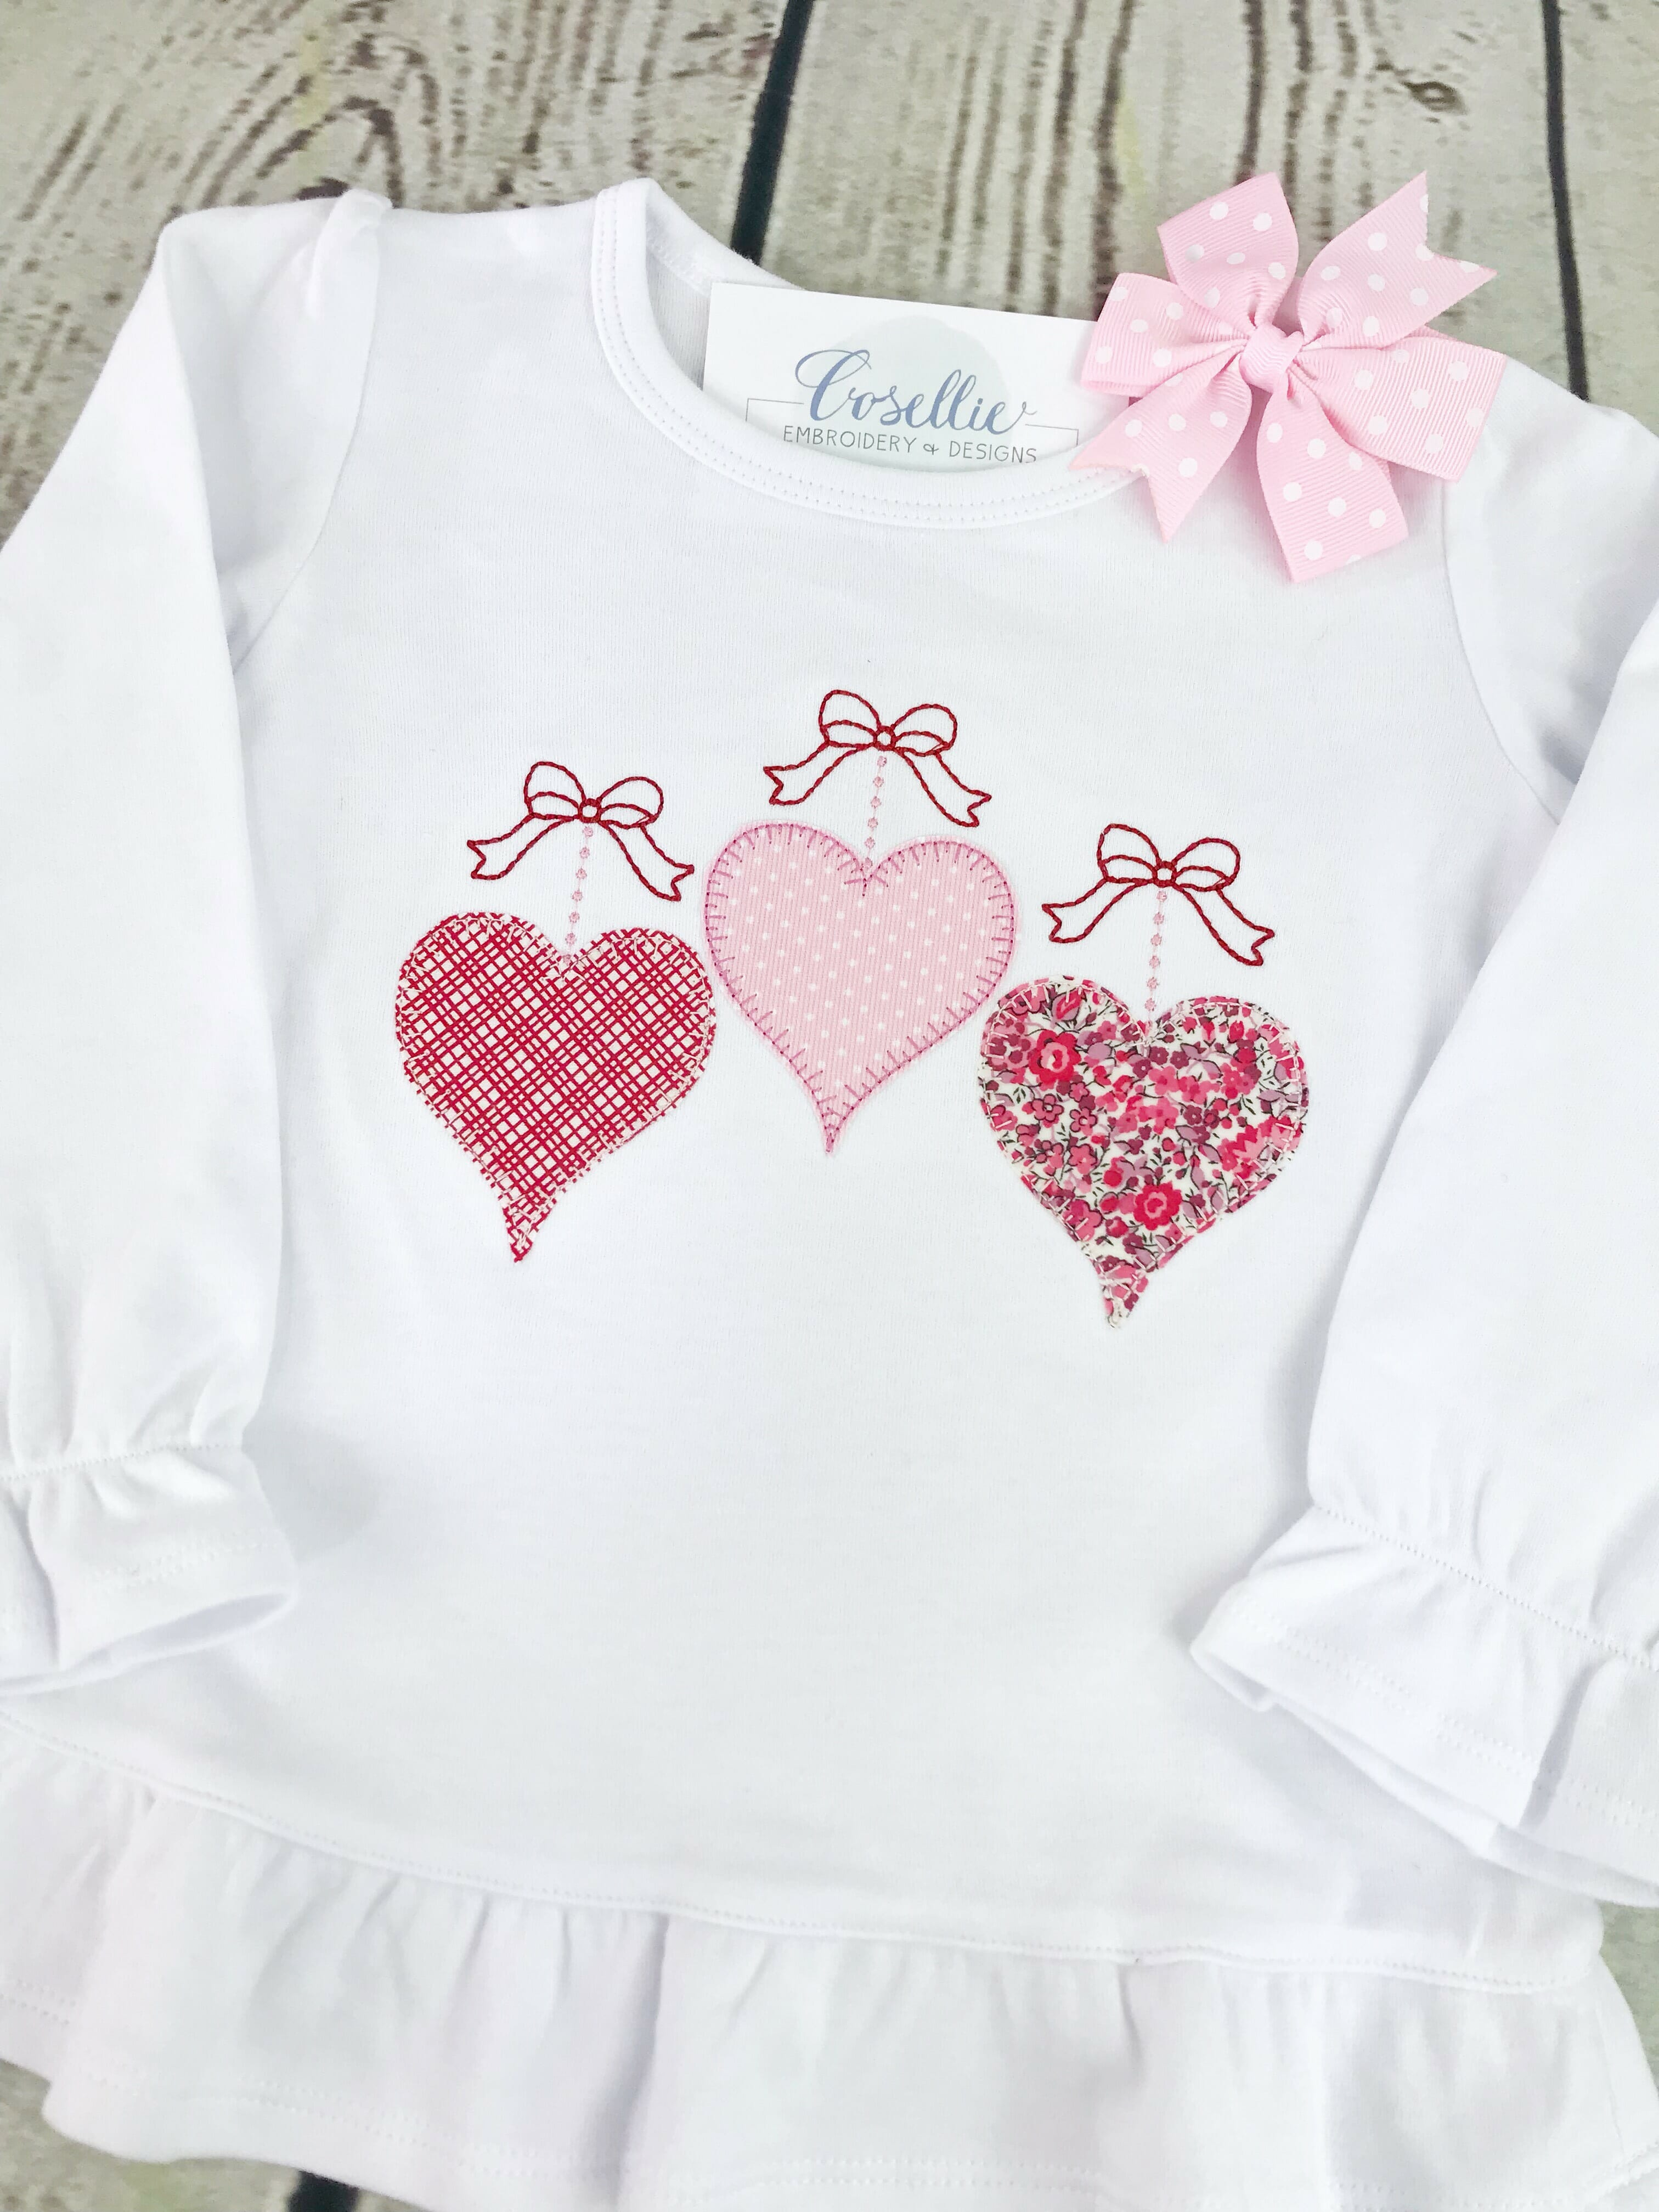 ee8d0716f724 Valentines hearts embroidery design